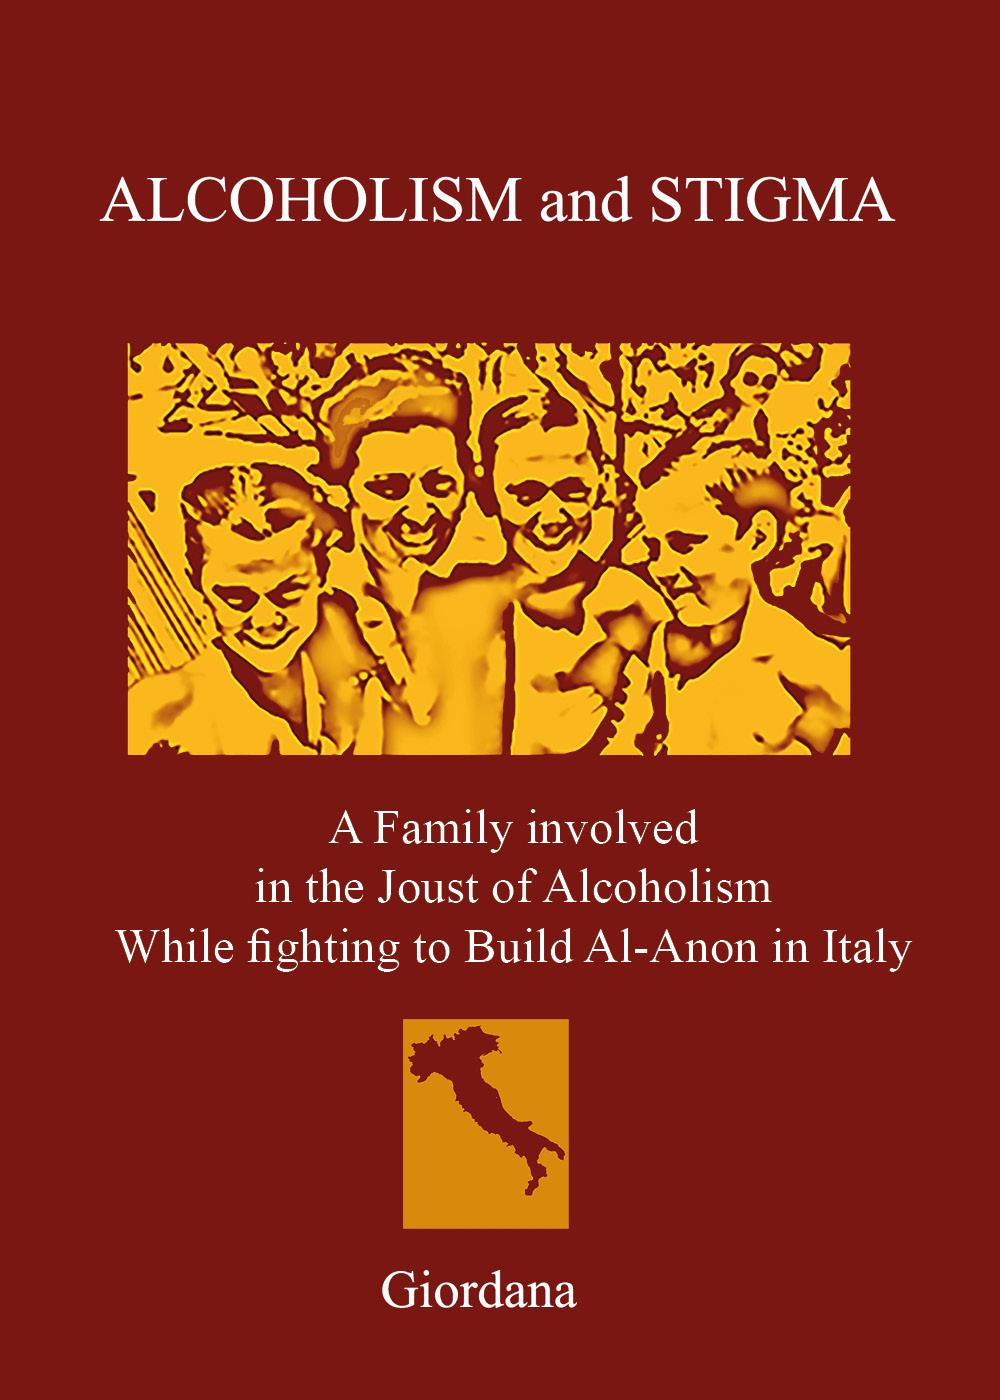 ALCOHOLISM AND STIGMA. A Family involved in the Joust of Alcoholism While fighting to Build Al-Anon in Italy.